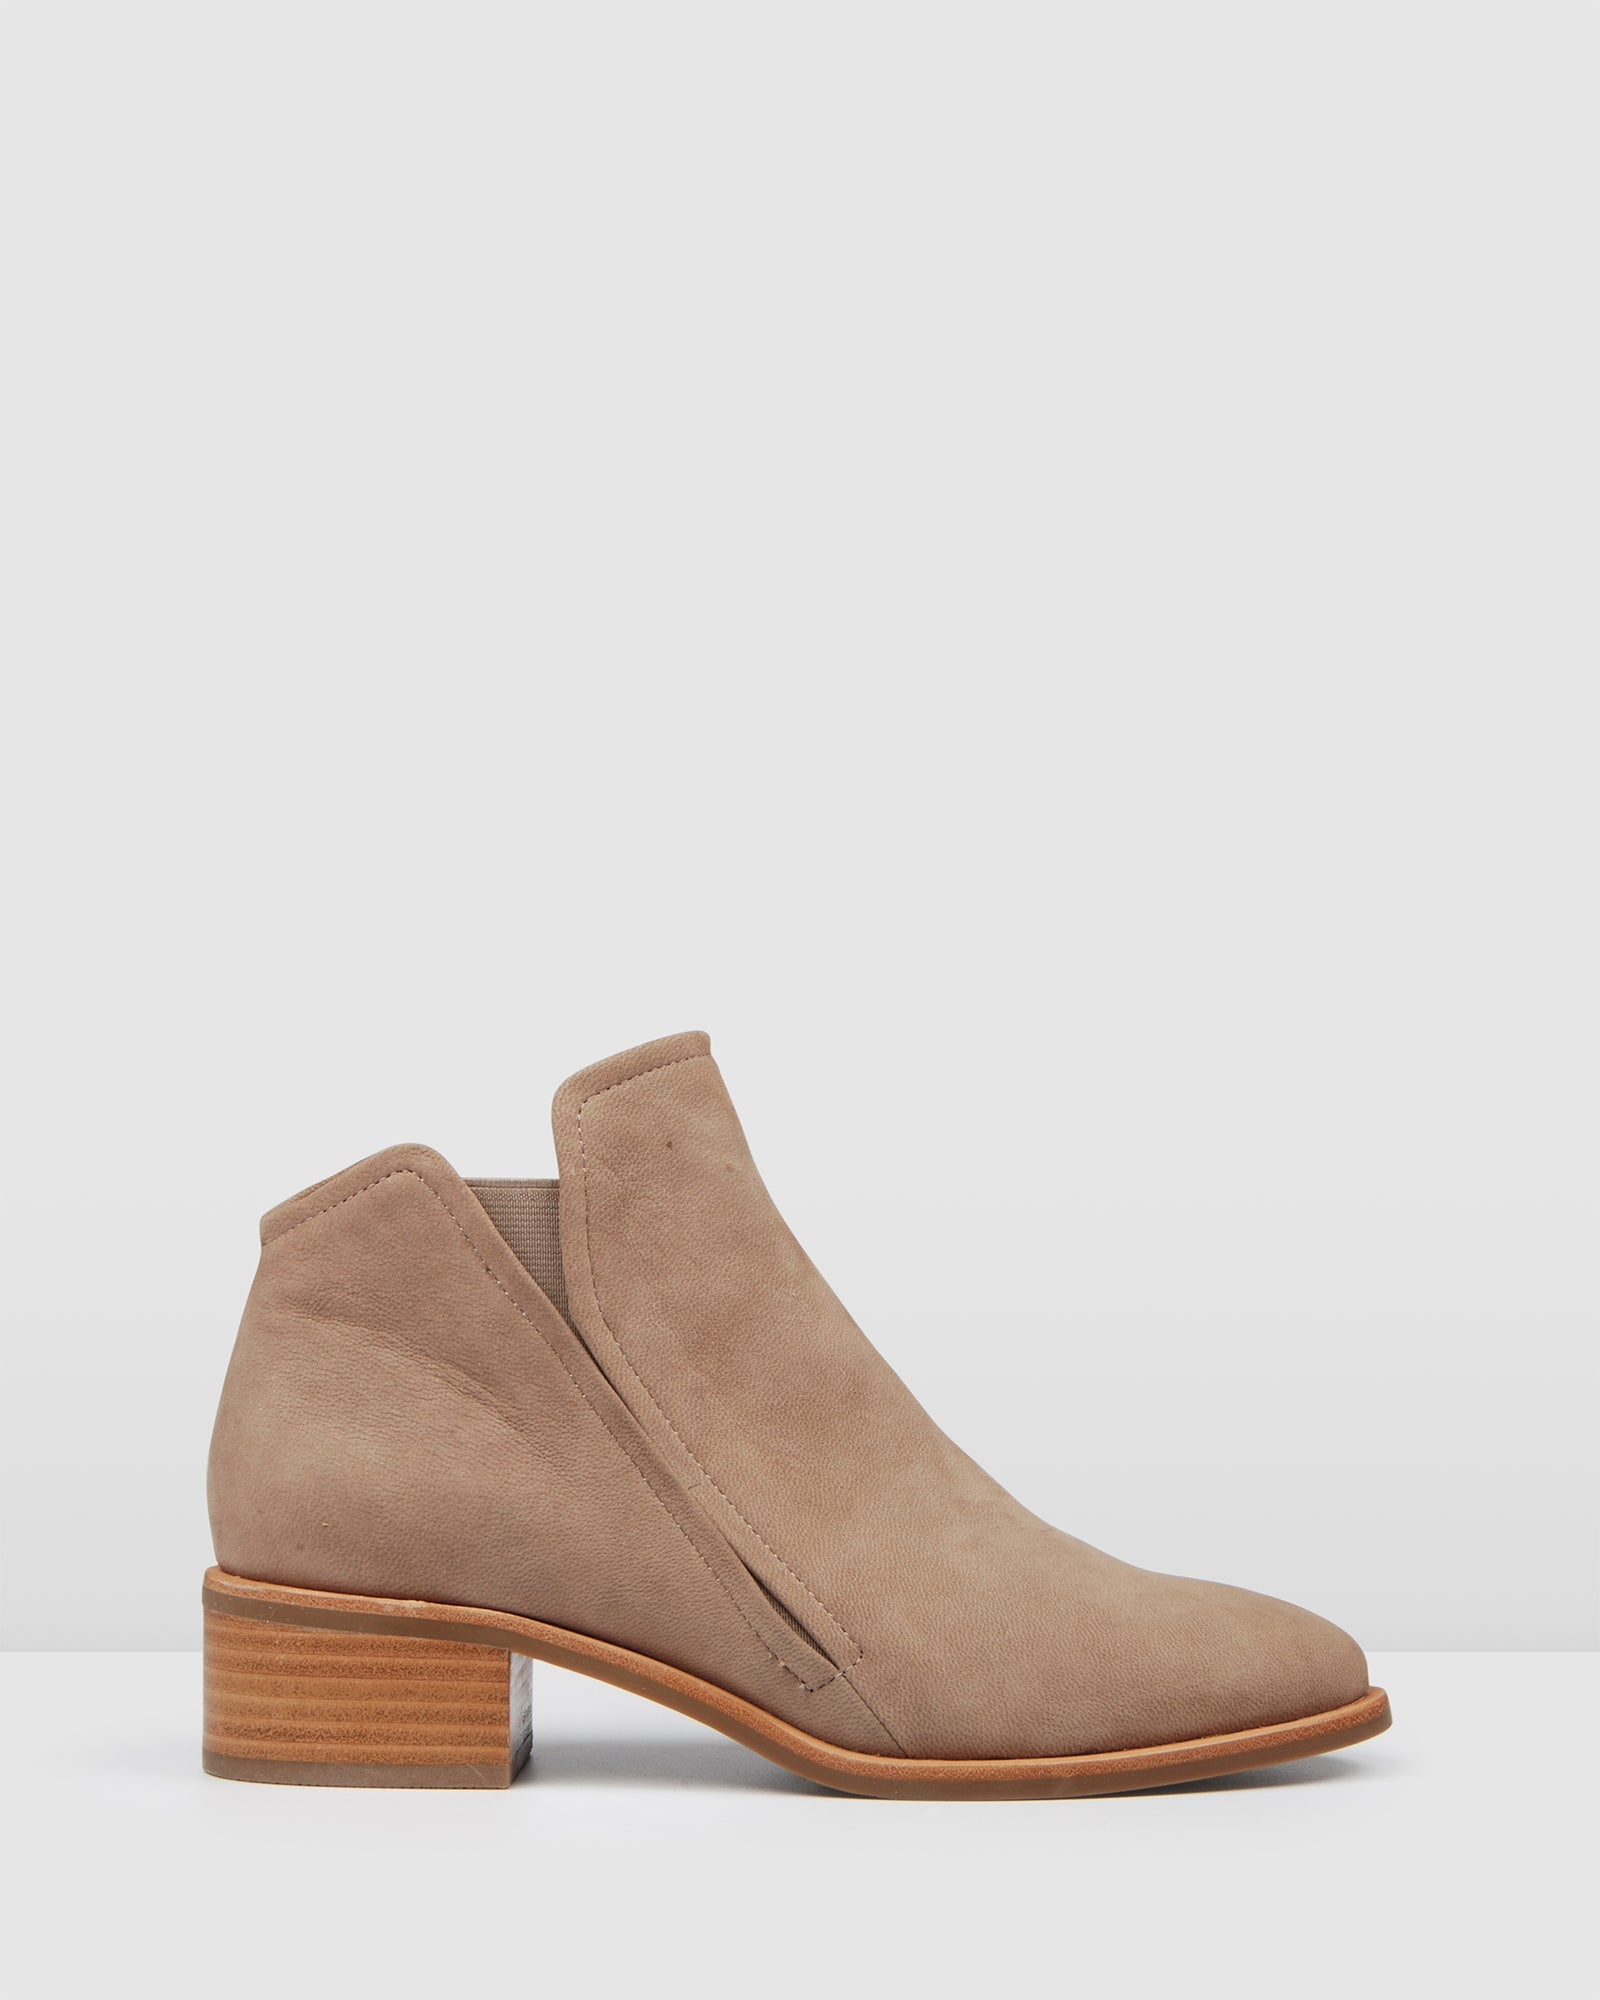 ASPEN FLAT ANKLE BOOTS TAUPE NUBUCK